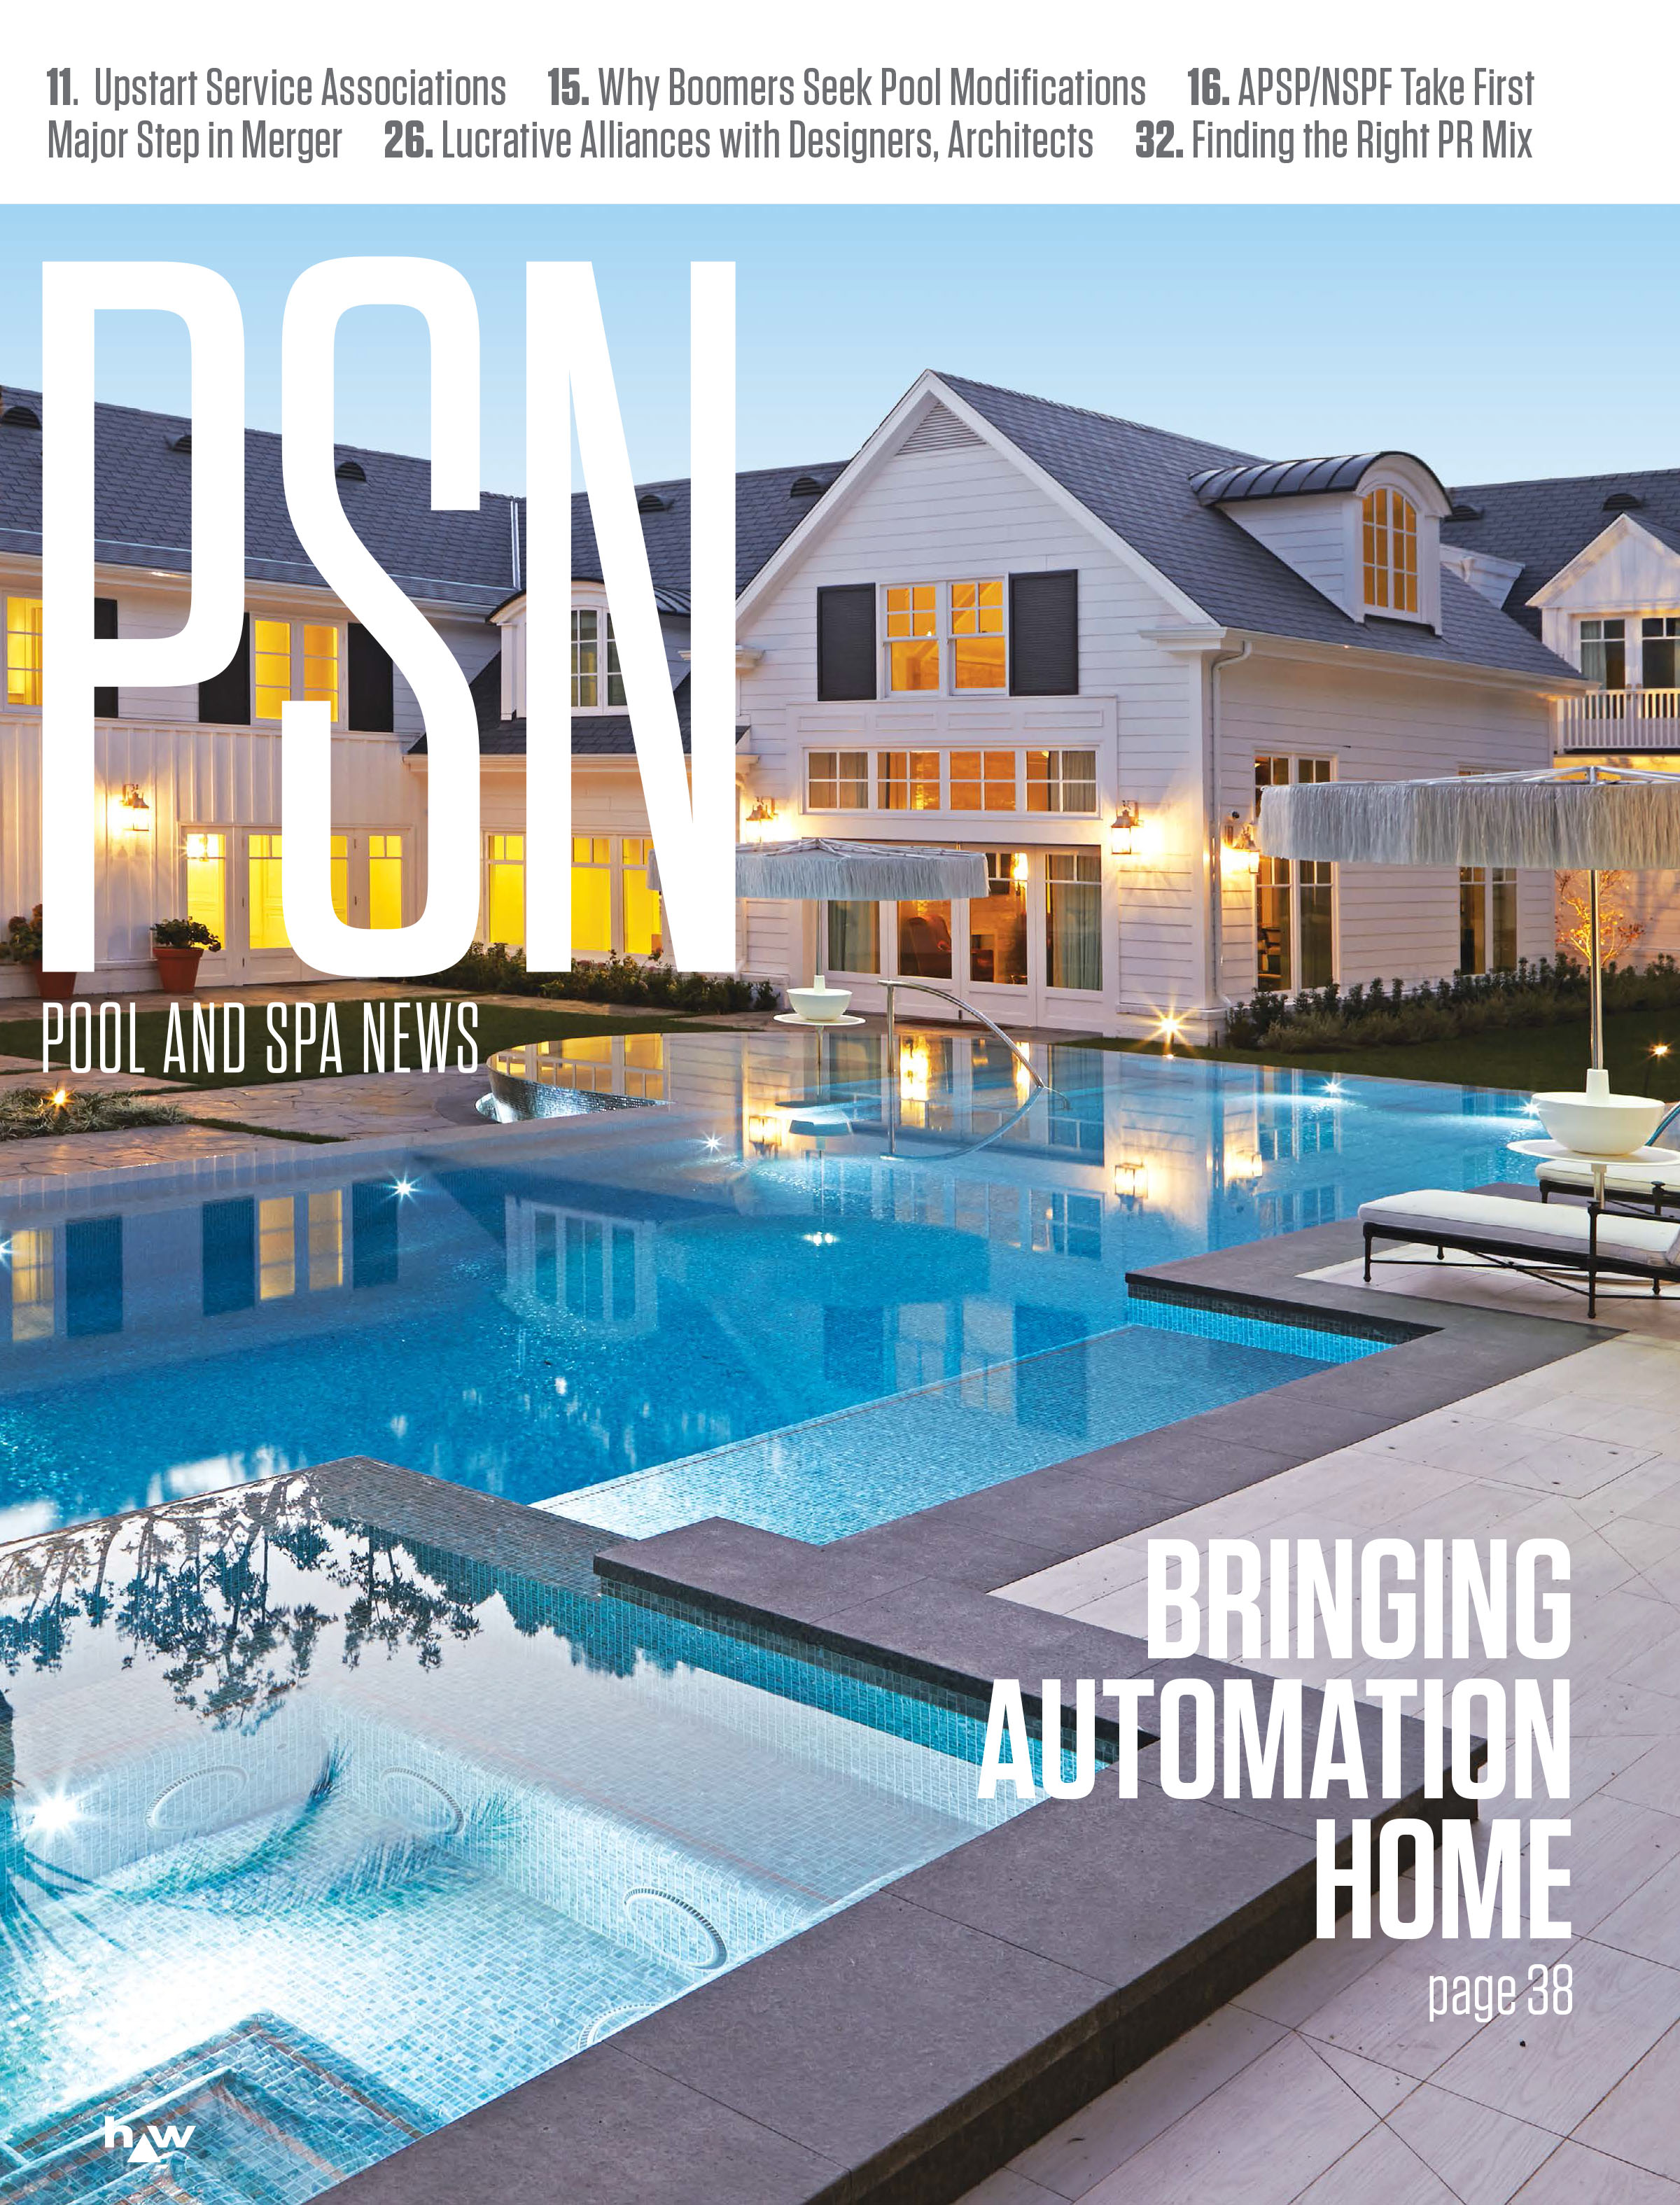 Pool and Spa News Magazine Subscription Application